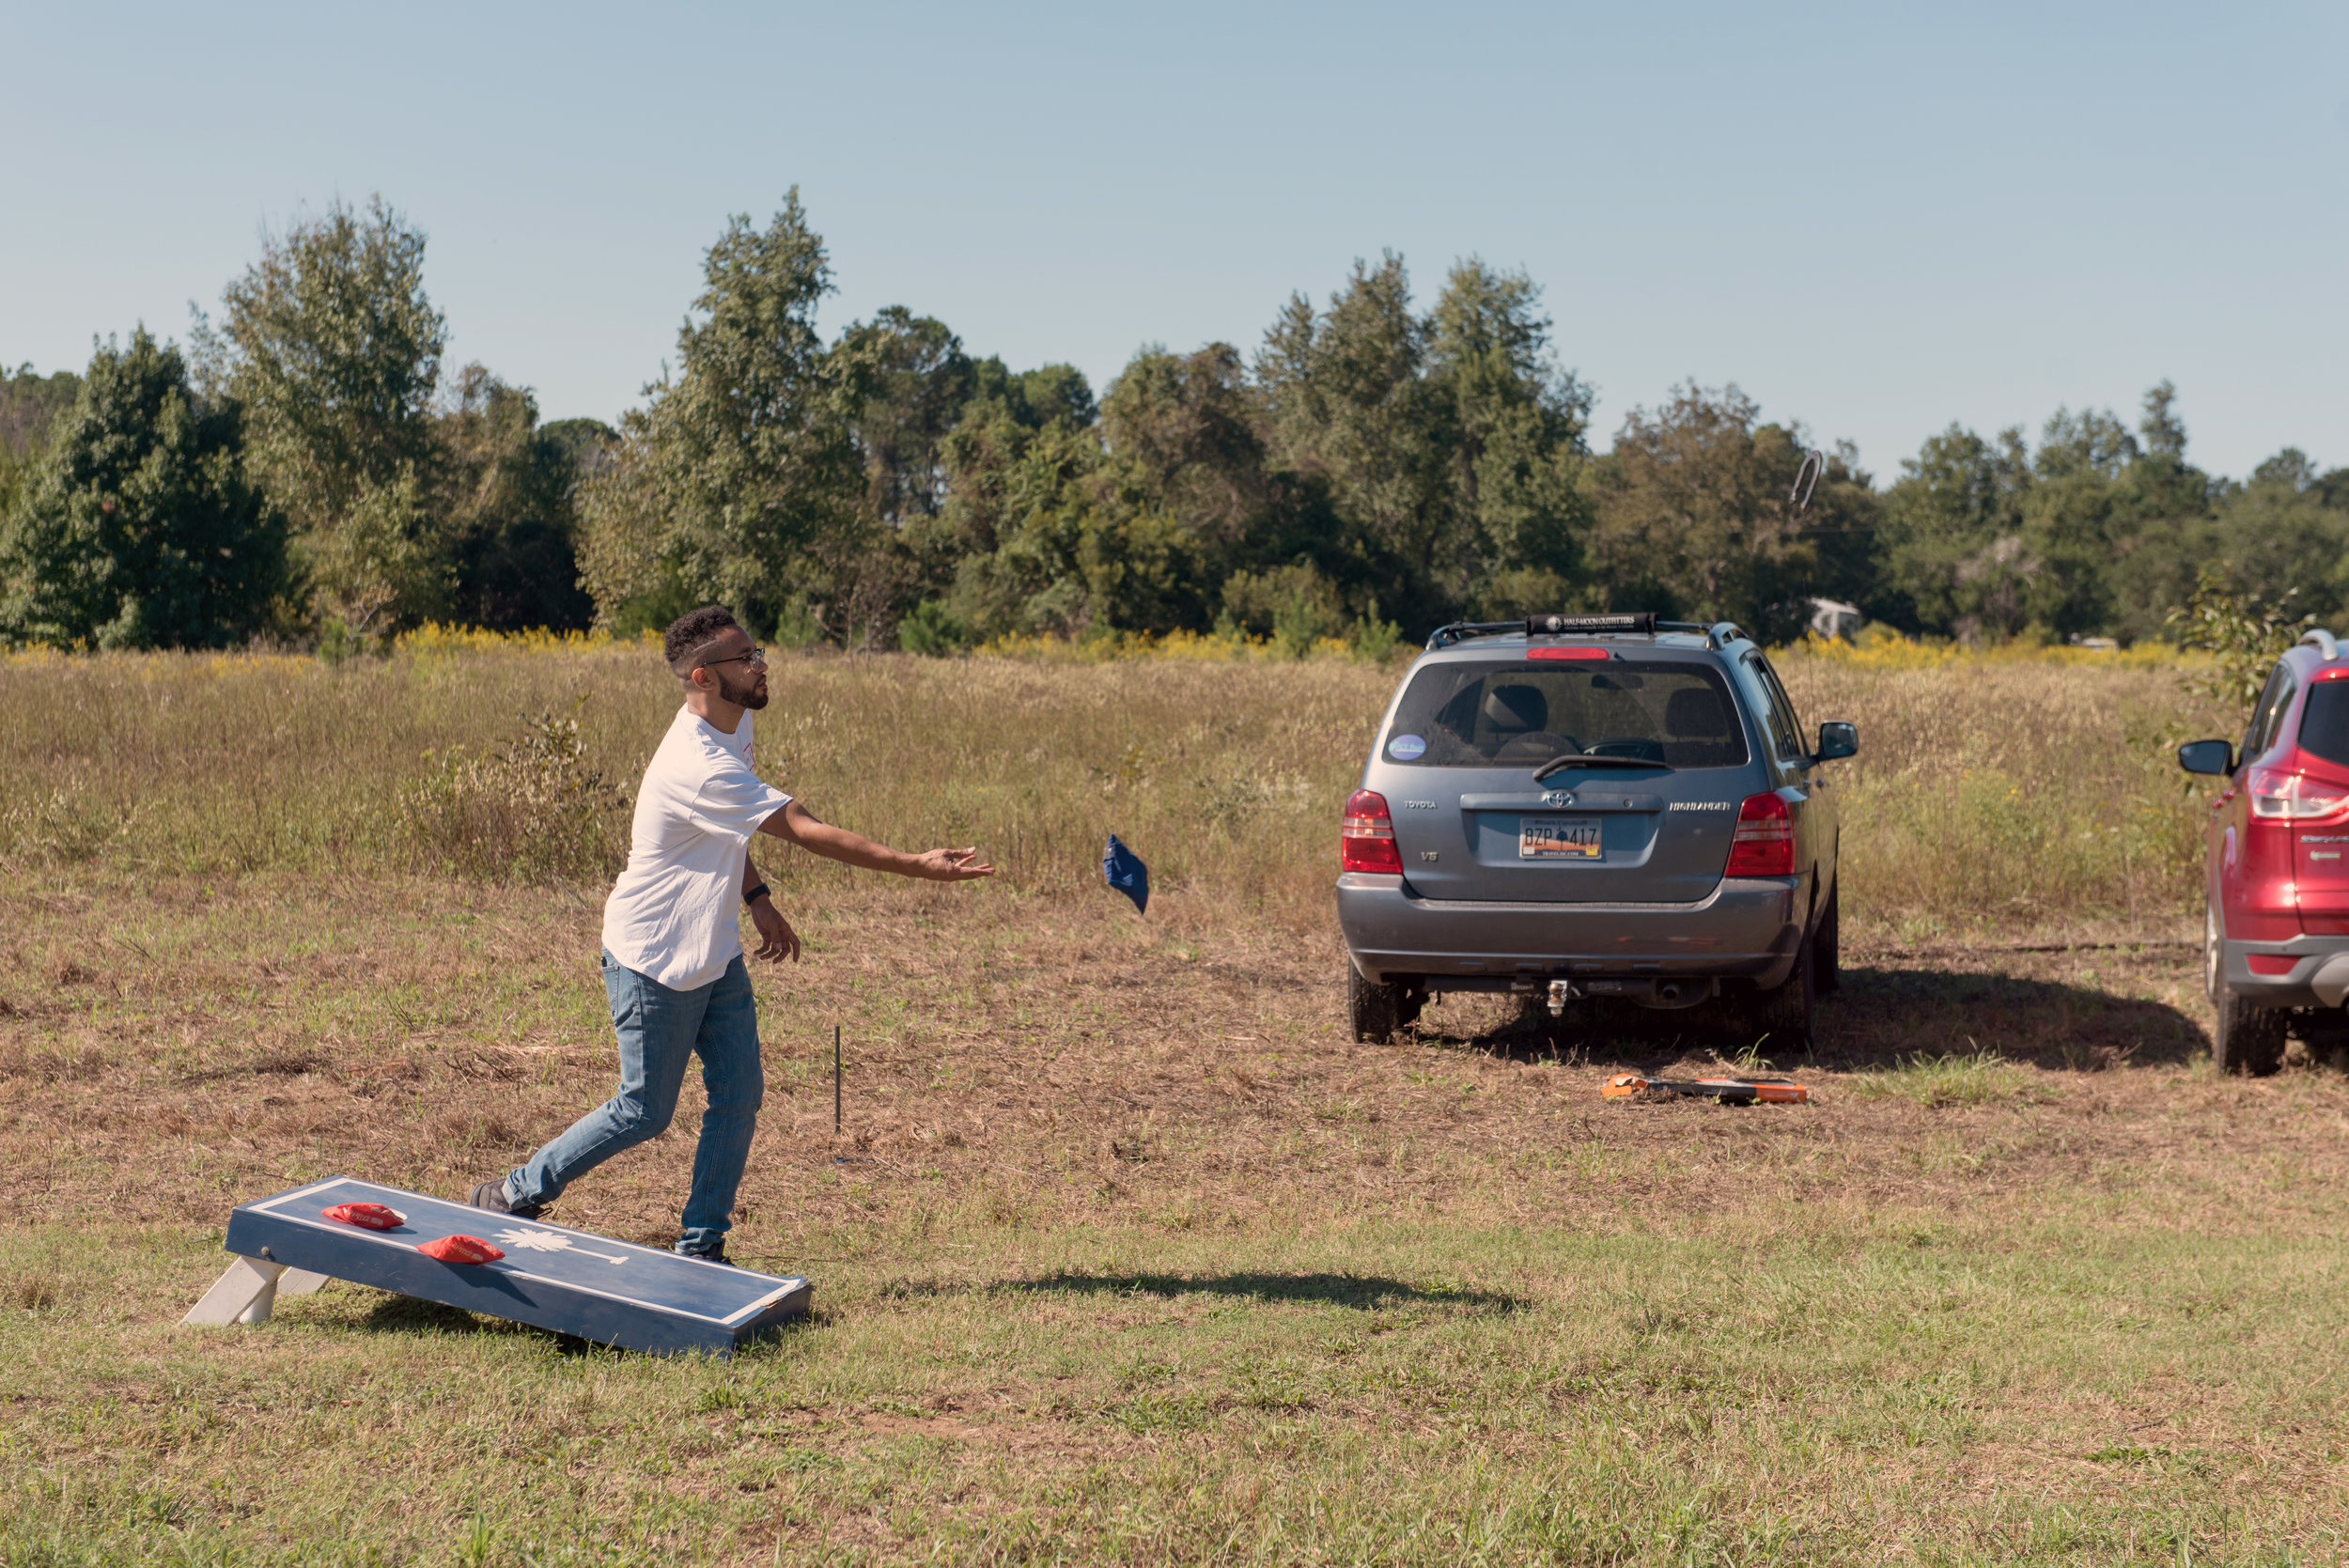 Young man tosses a blue bean bag while playing the game cornhole.